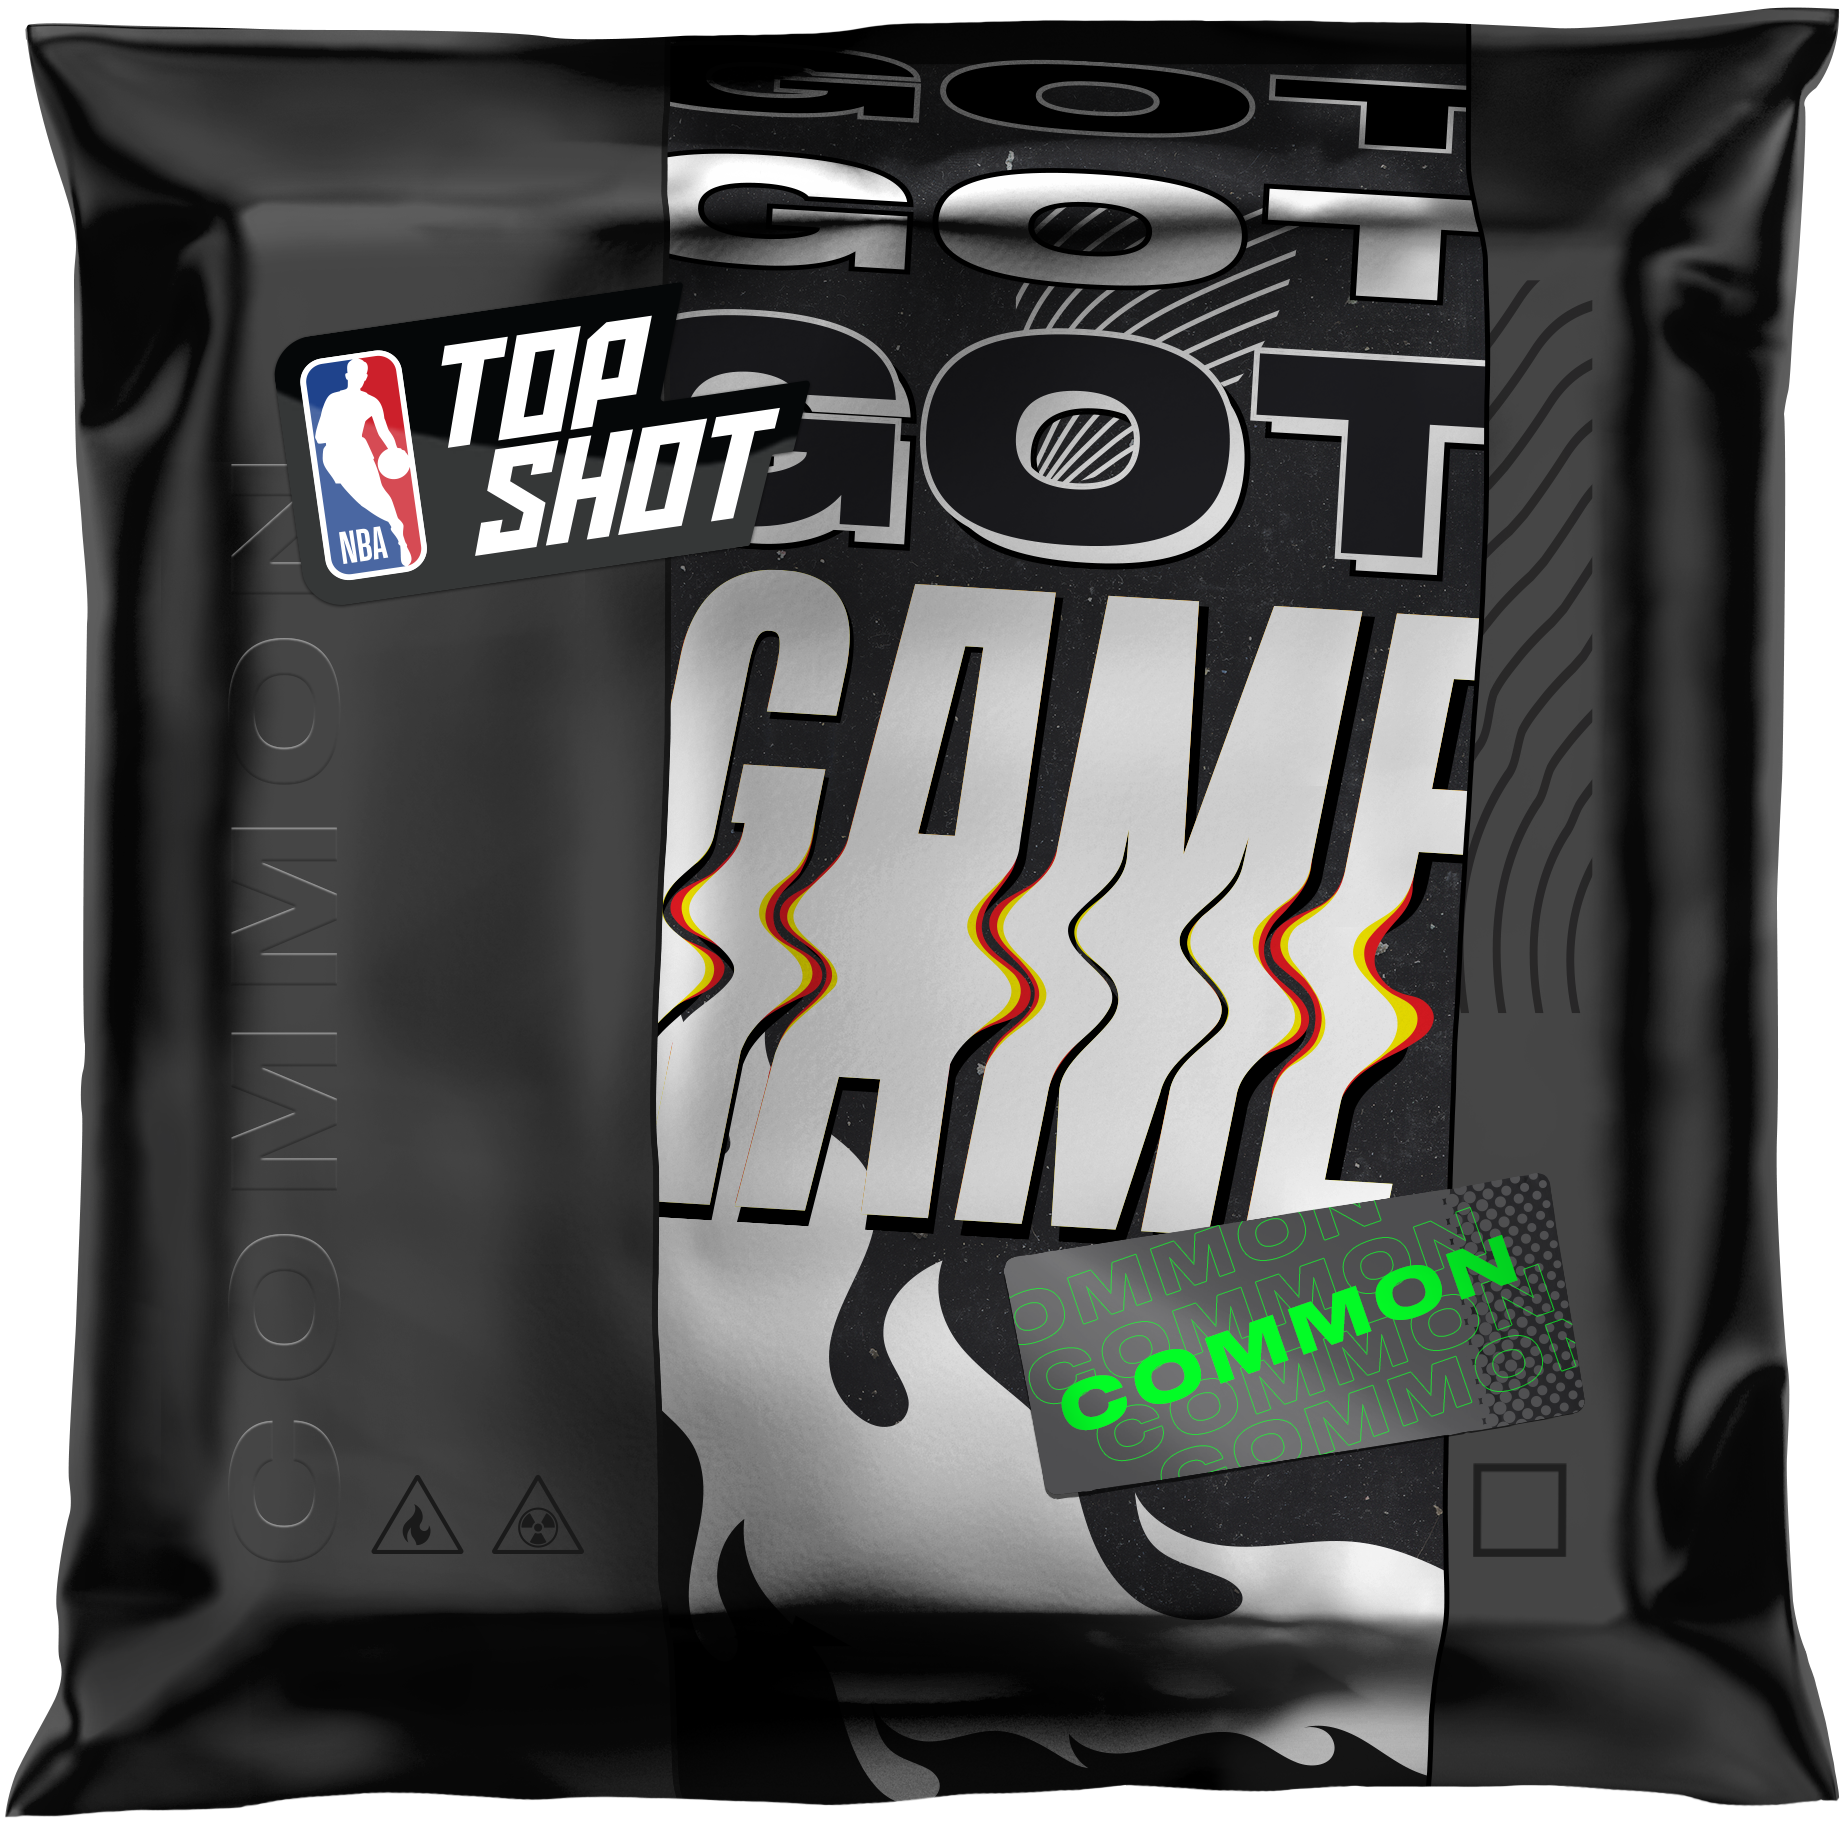 Nba Top Shot Officially Licensed Digital Collectibles